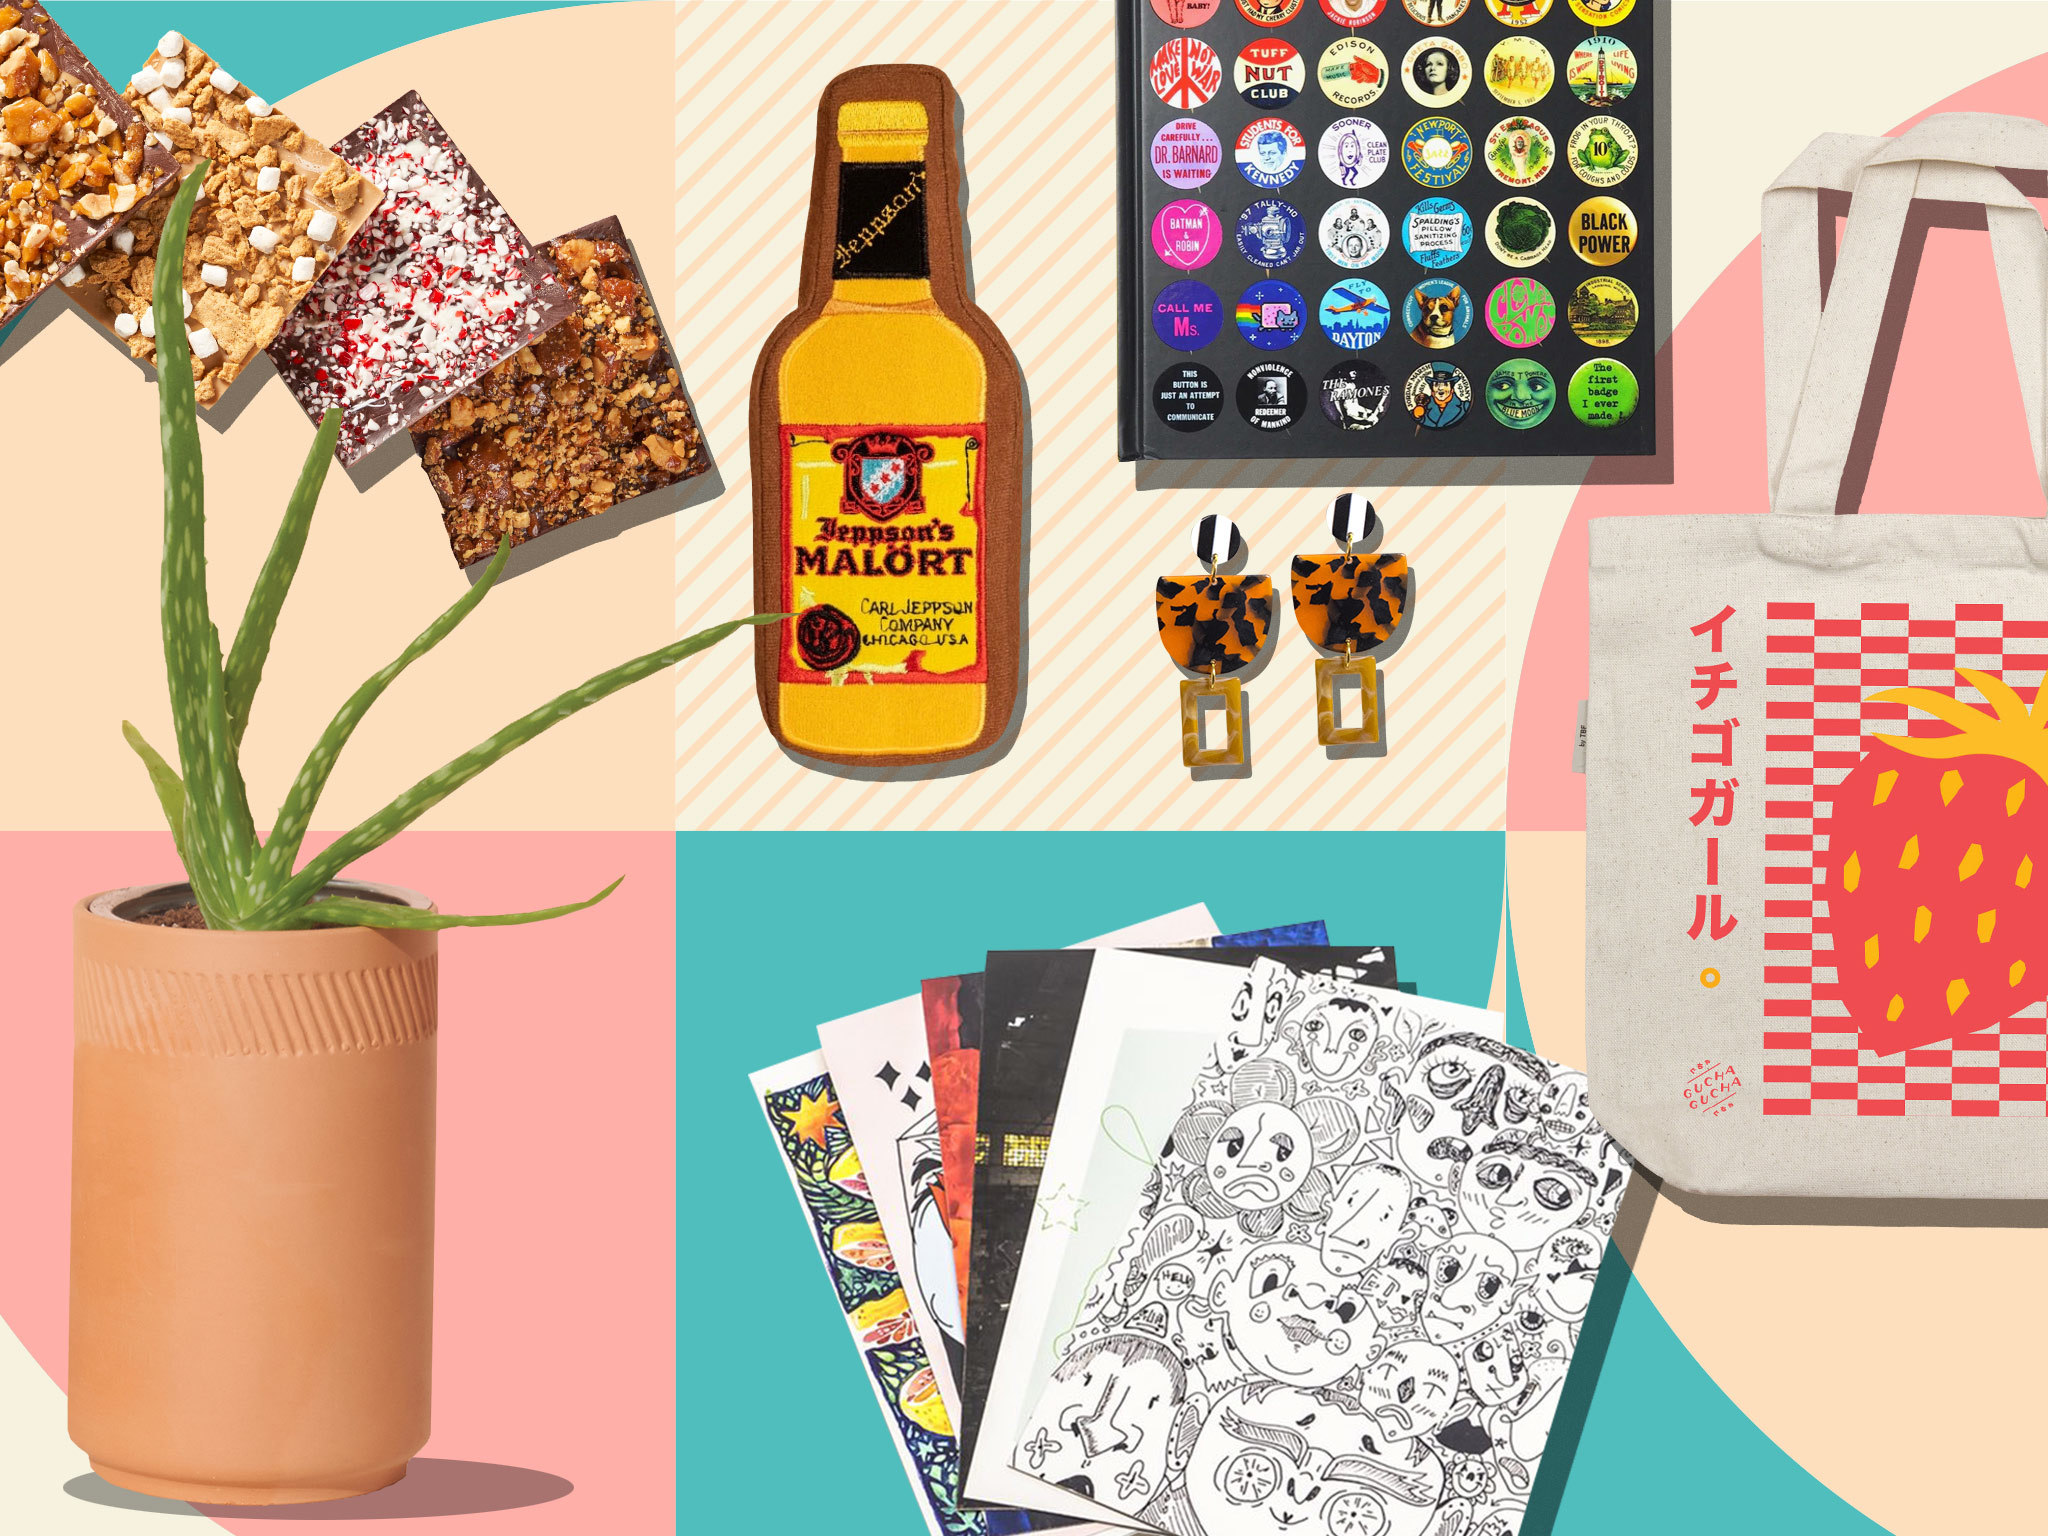 15 amazing holiday gifts made in Chicago